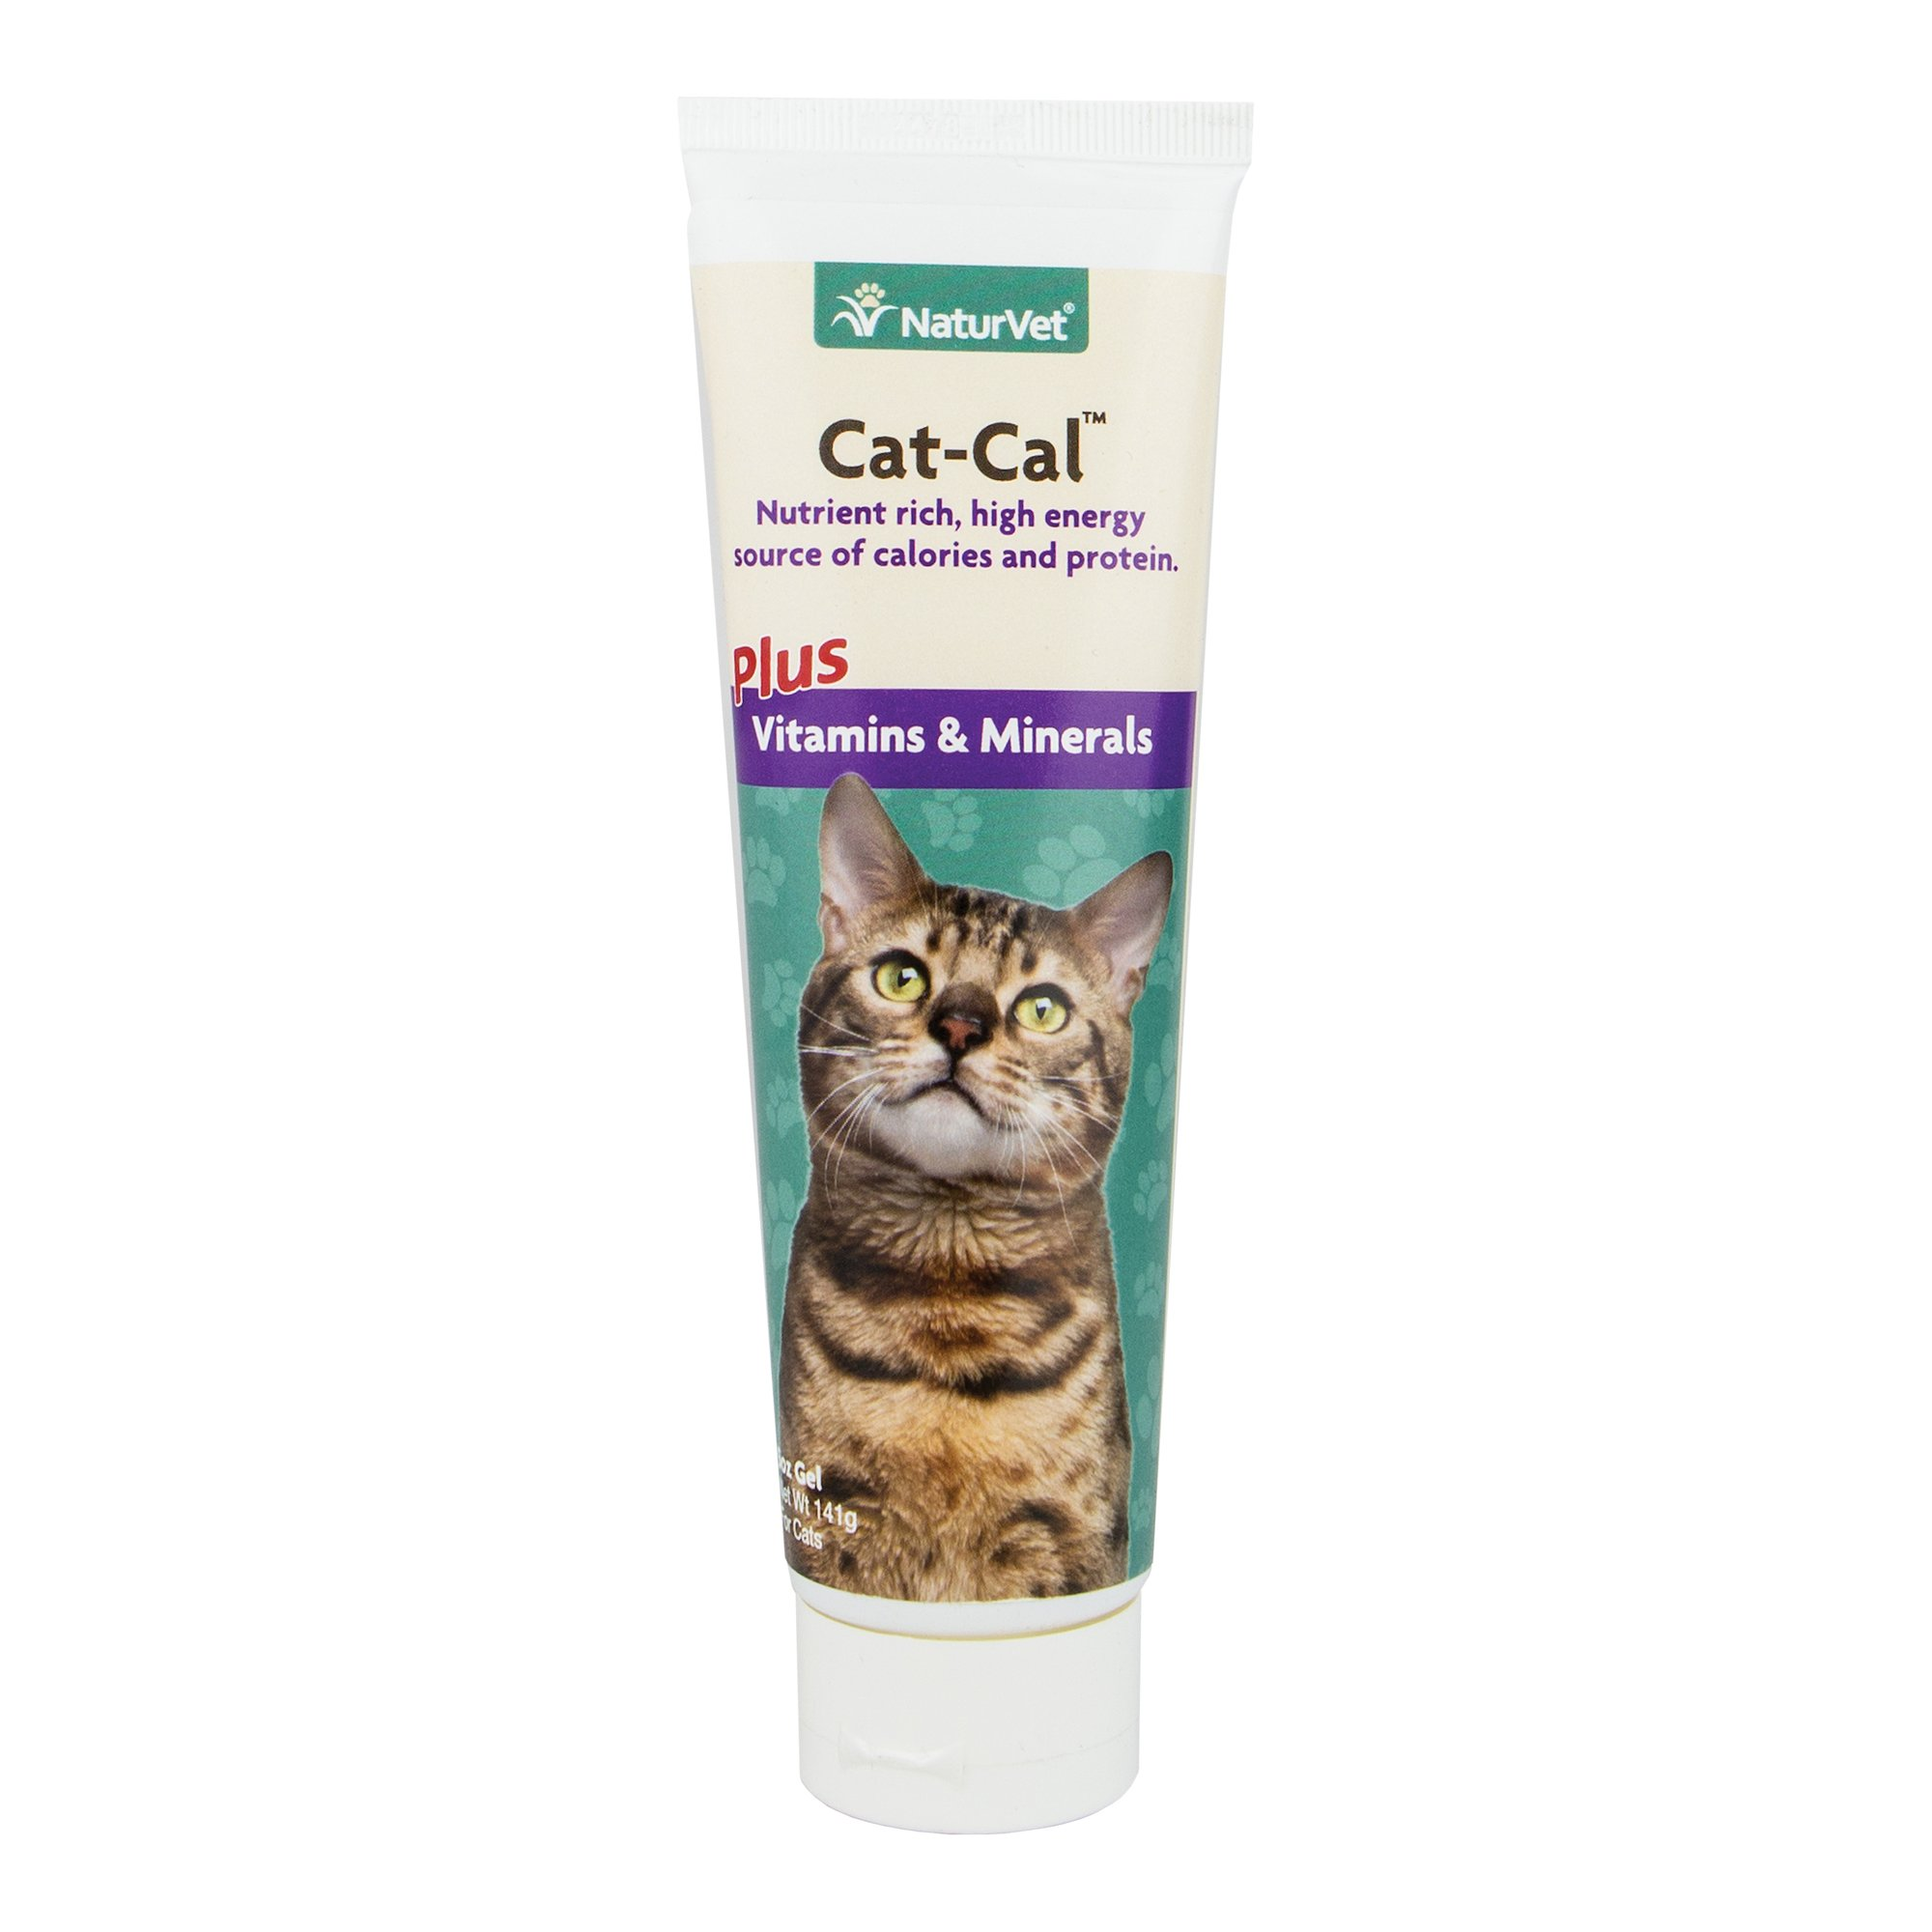 NaturVet Cat-Cal Nutritional Gel Plus Vitamins & Minerals for Cats, 5 oz Gel, Made in USA